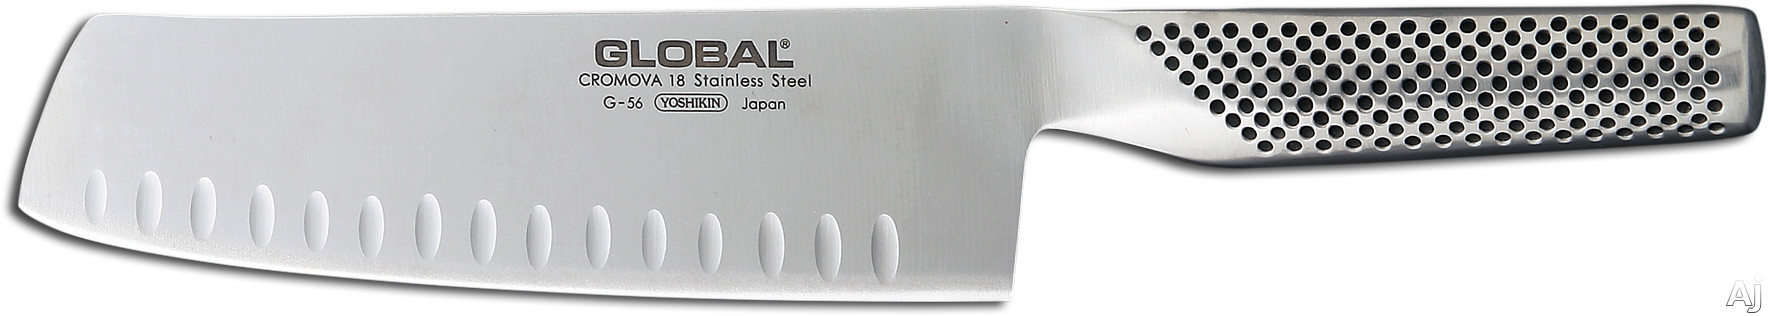 Global G56 7 Inch Fluted Vegetable Knife with Cromova Tempered Stainless Steel, Hollow Weighted Handle, Made in Japan, 2 Year Warranty and Hand Wash Only